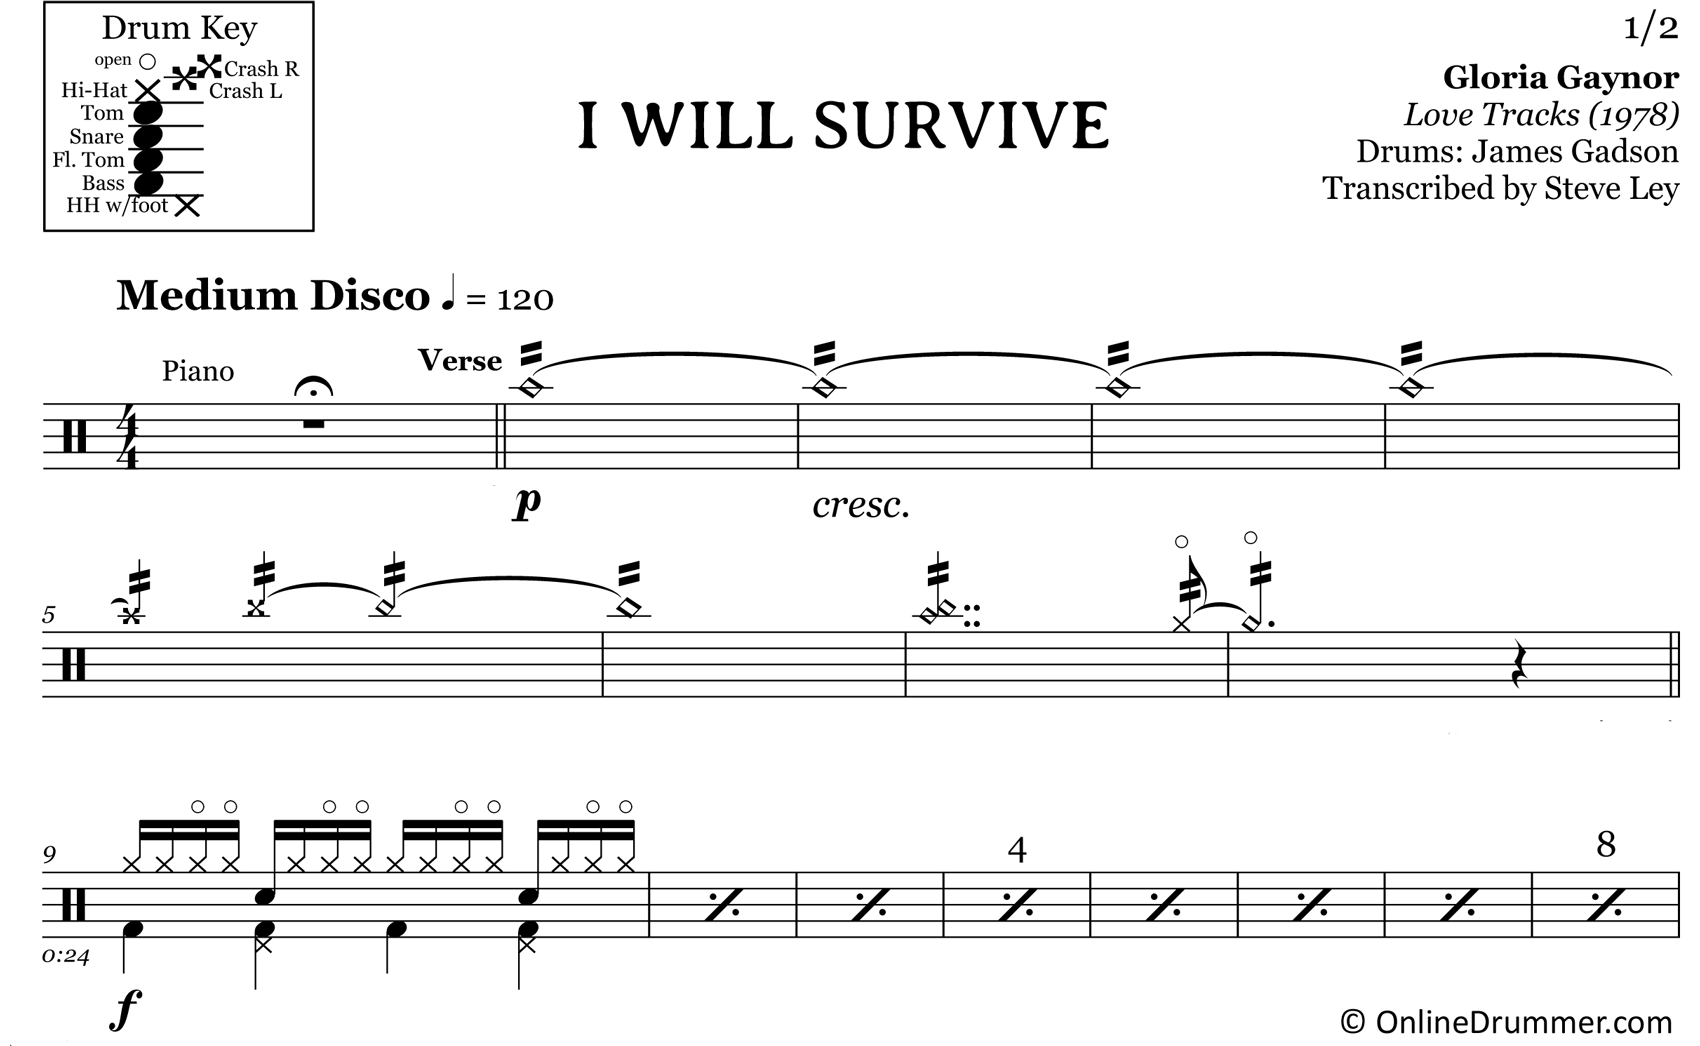 I Will Survive - Gloria Gaynor - Drum Sheet Music